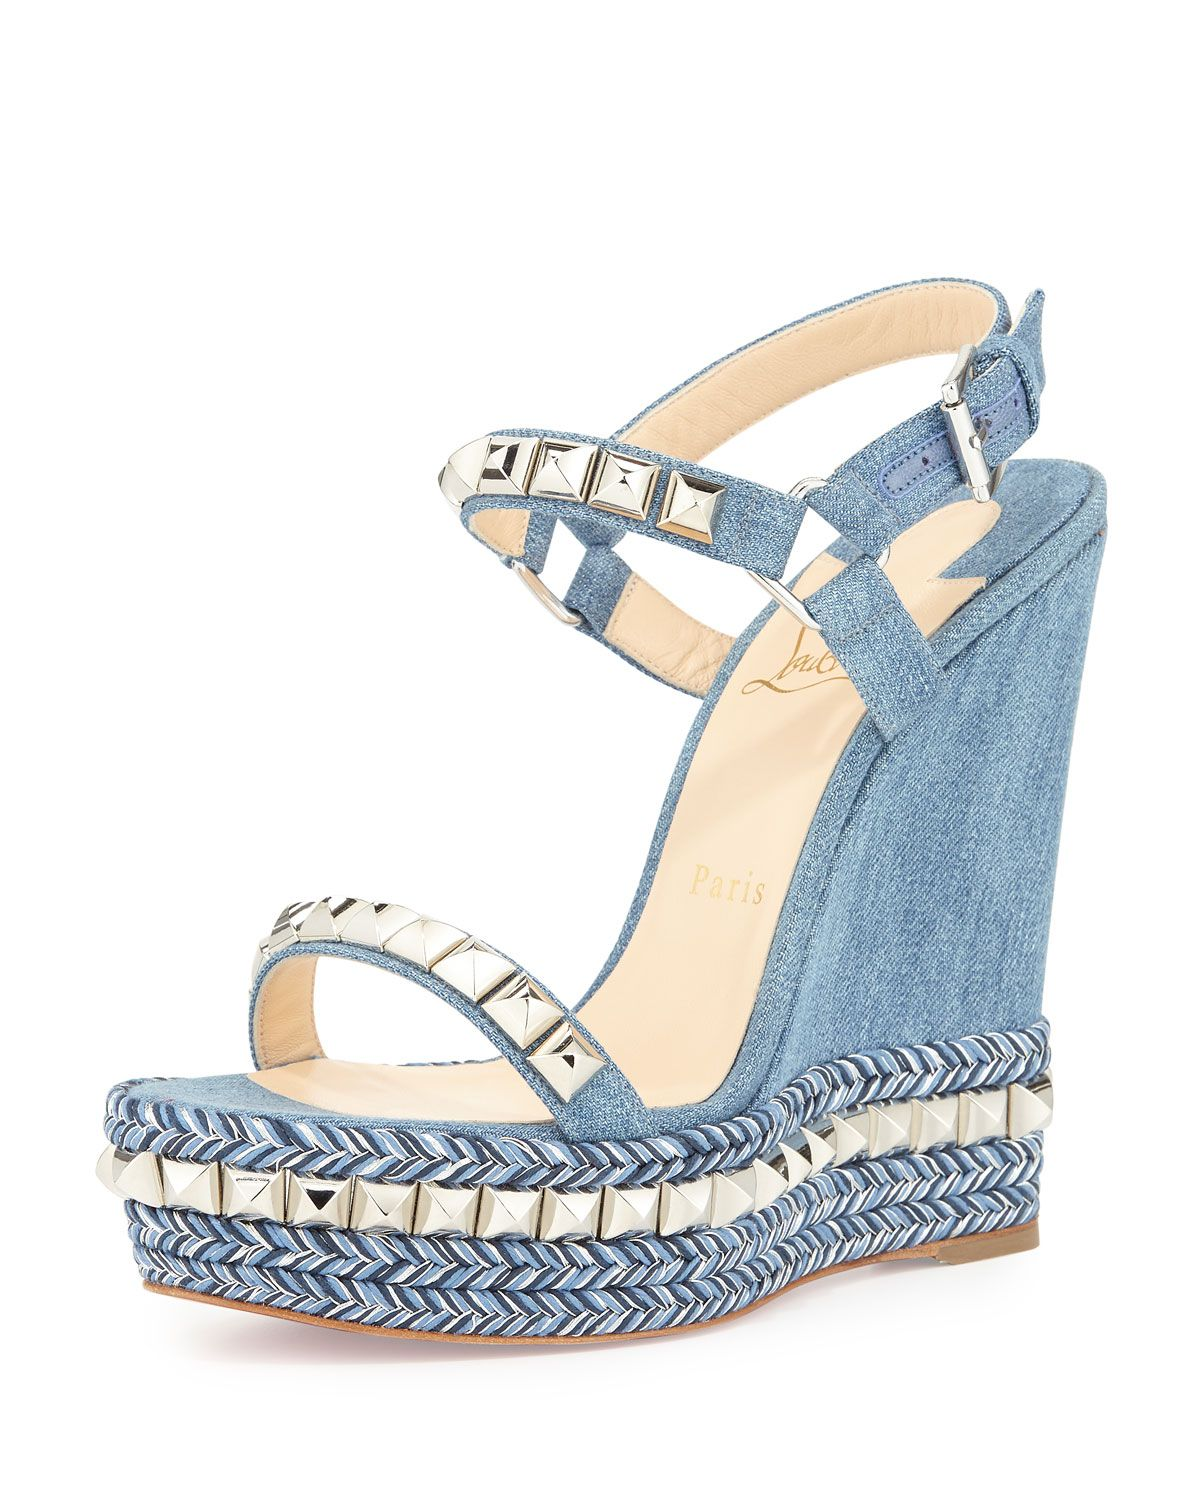 Christian Louboutin Cataclou Denim 140mm Wedge Red Sole Sandal,  Blue/Silver, Size: